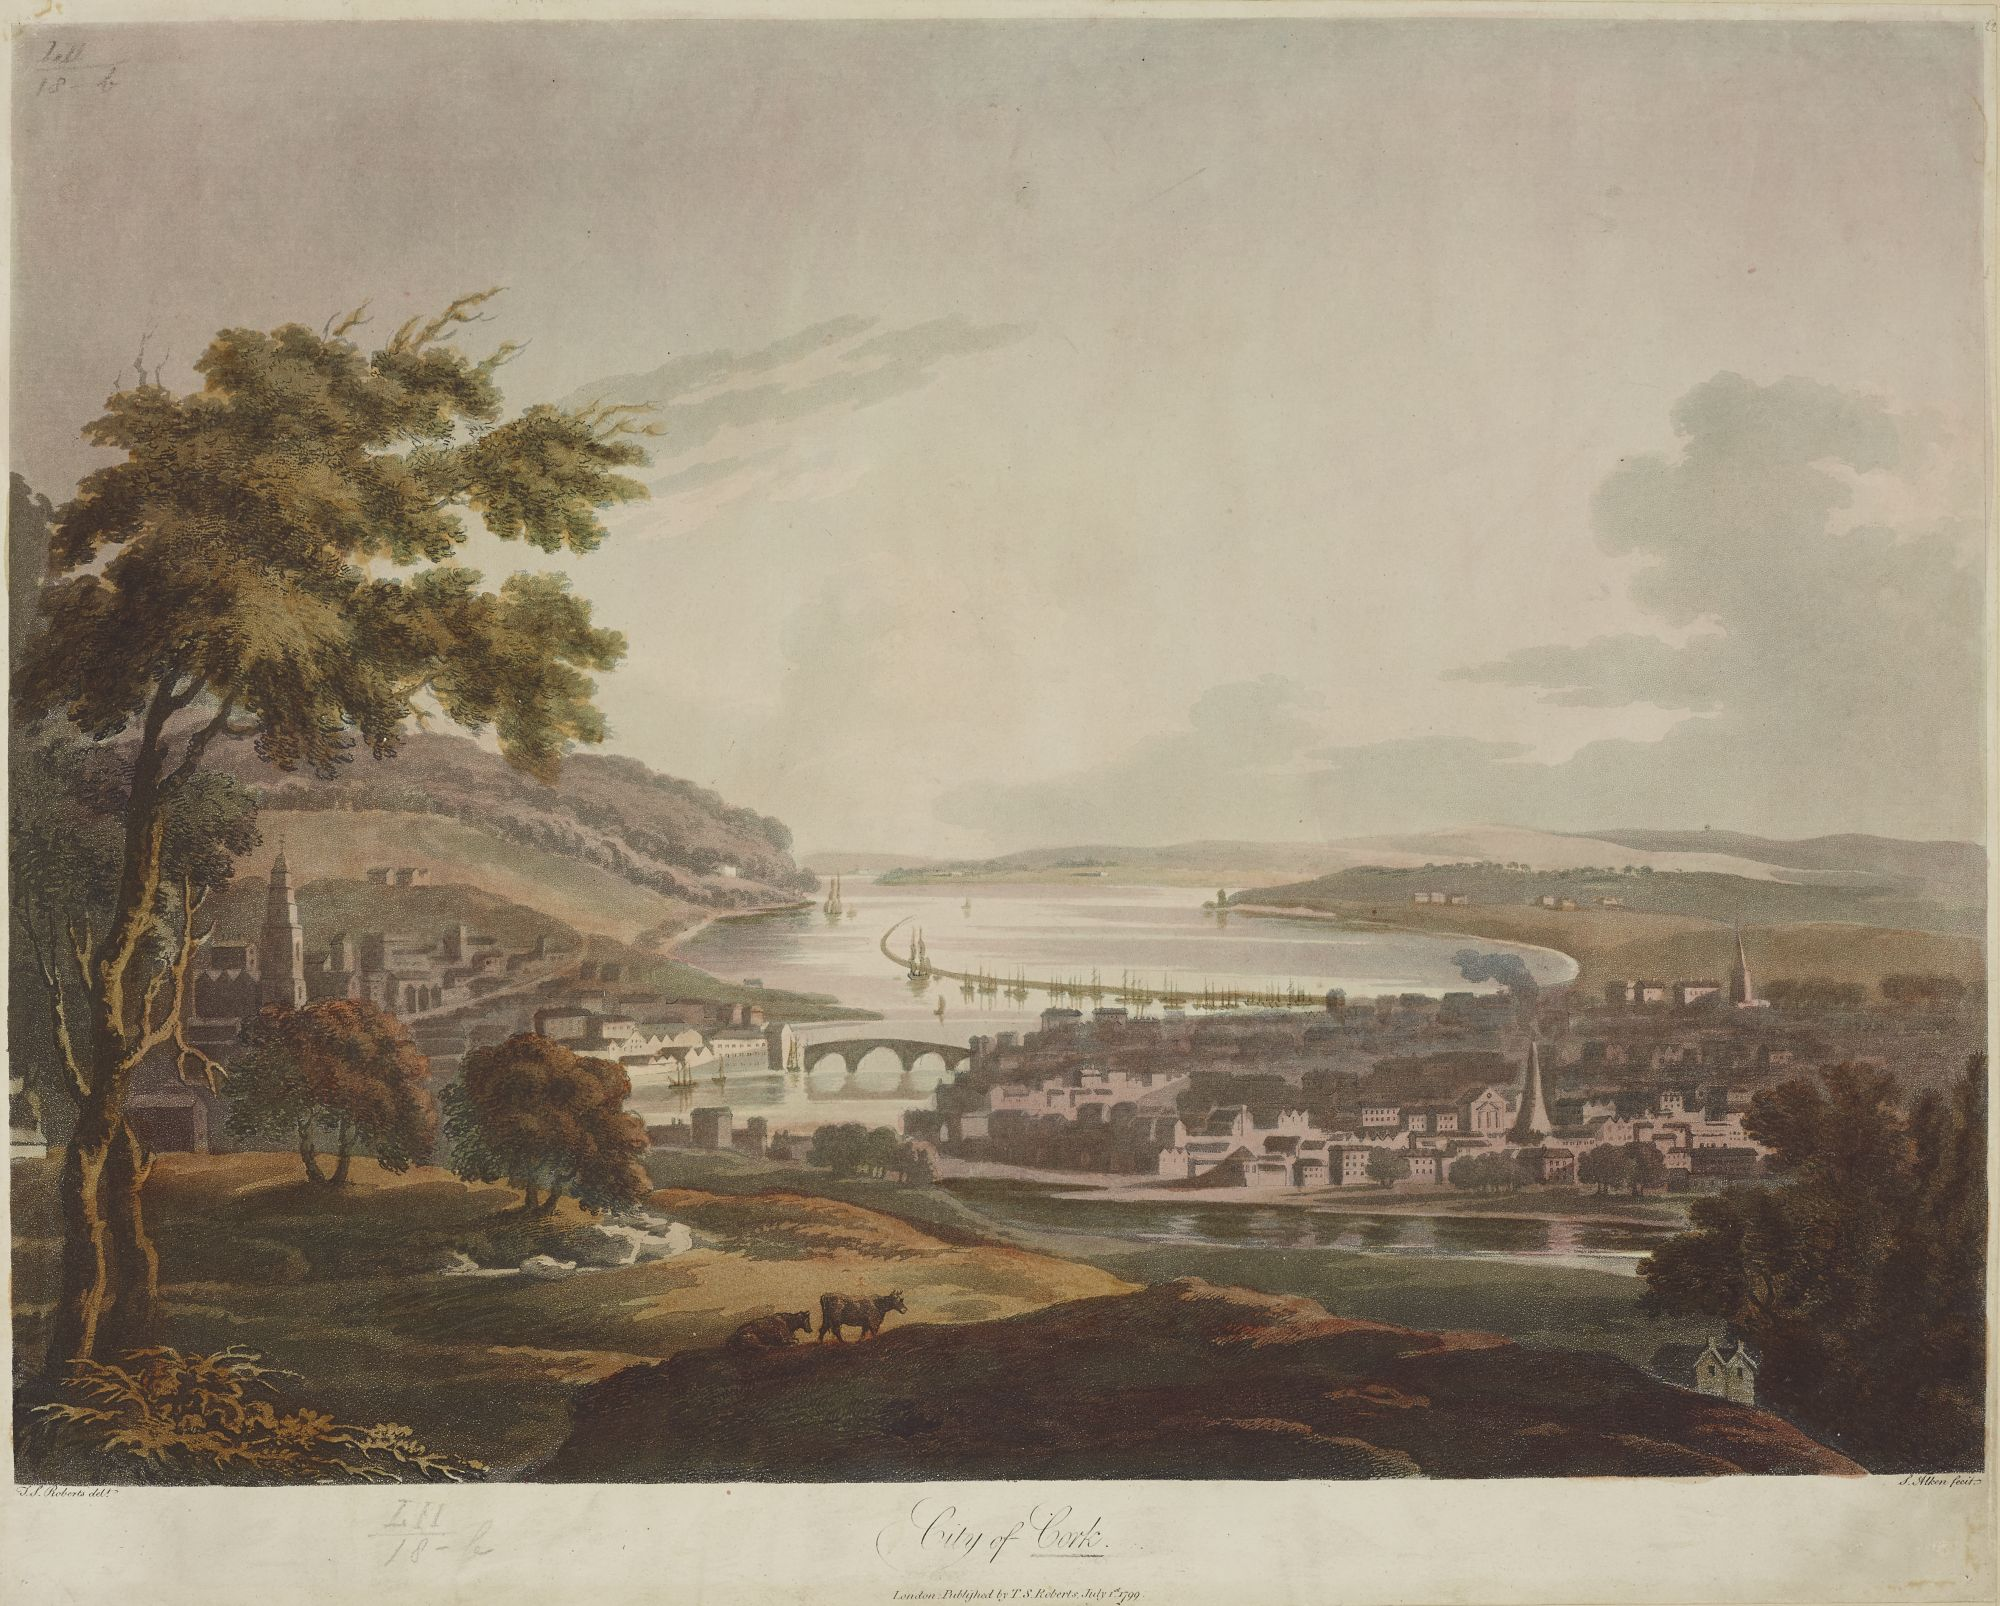 City of Cork, by Samuel Alken after Thomas Sautelle Roberts.